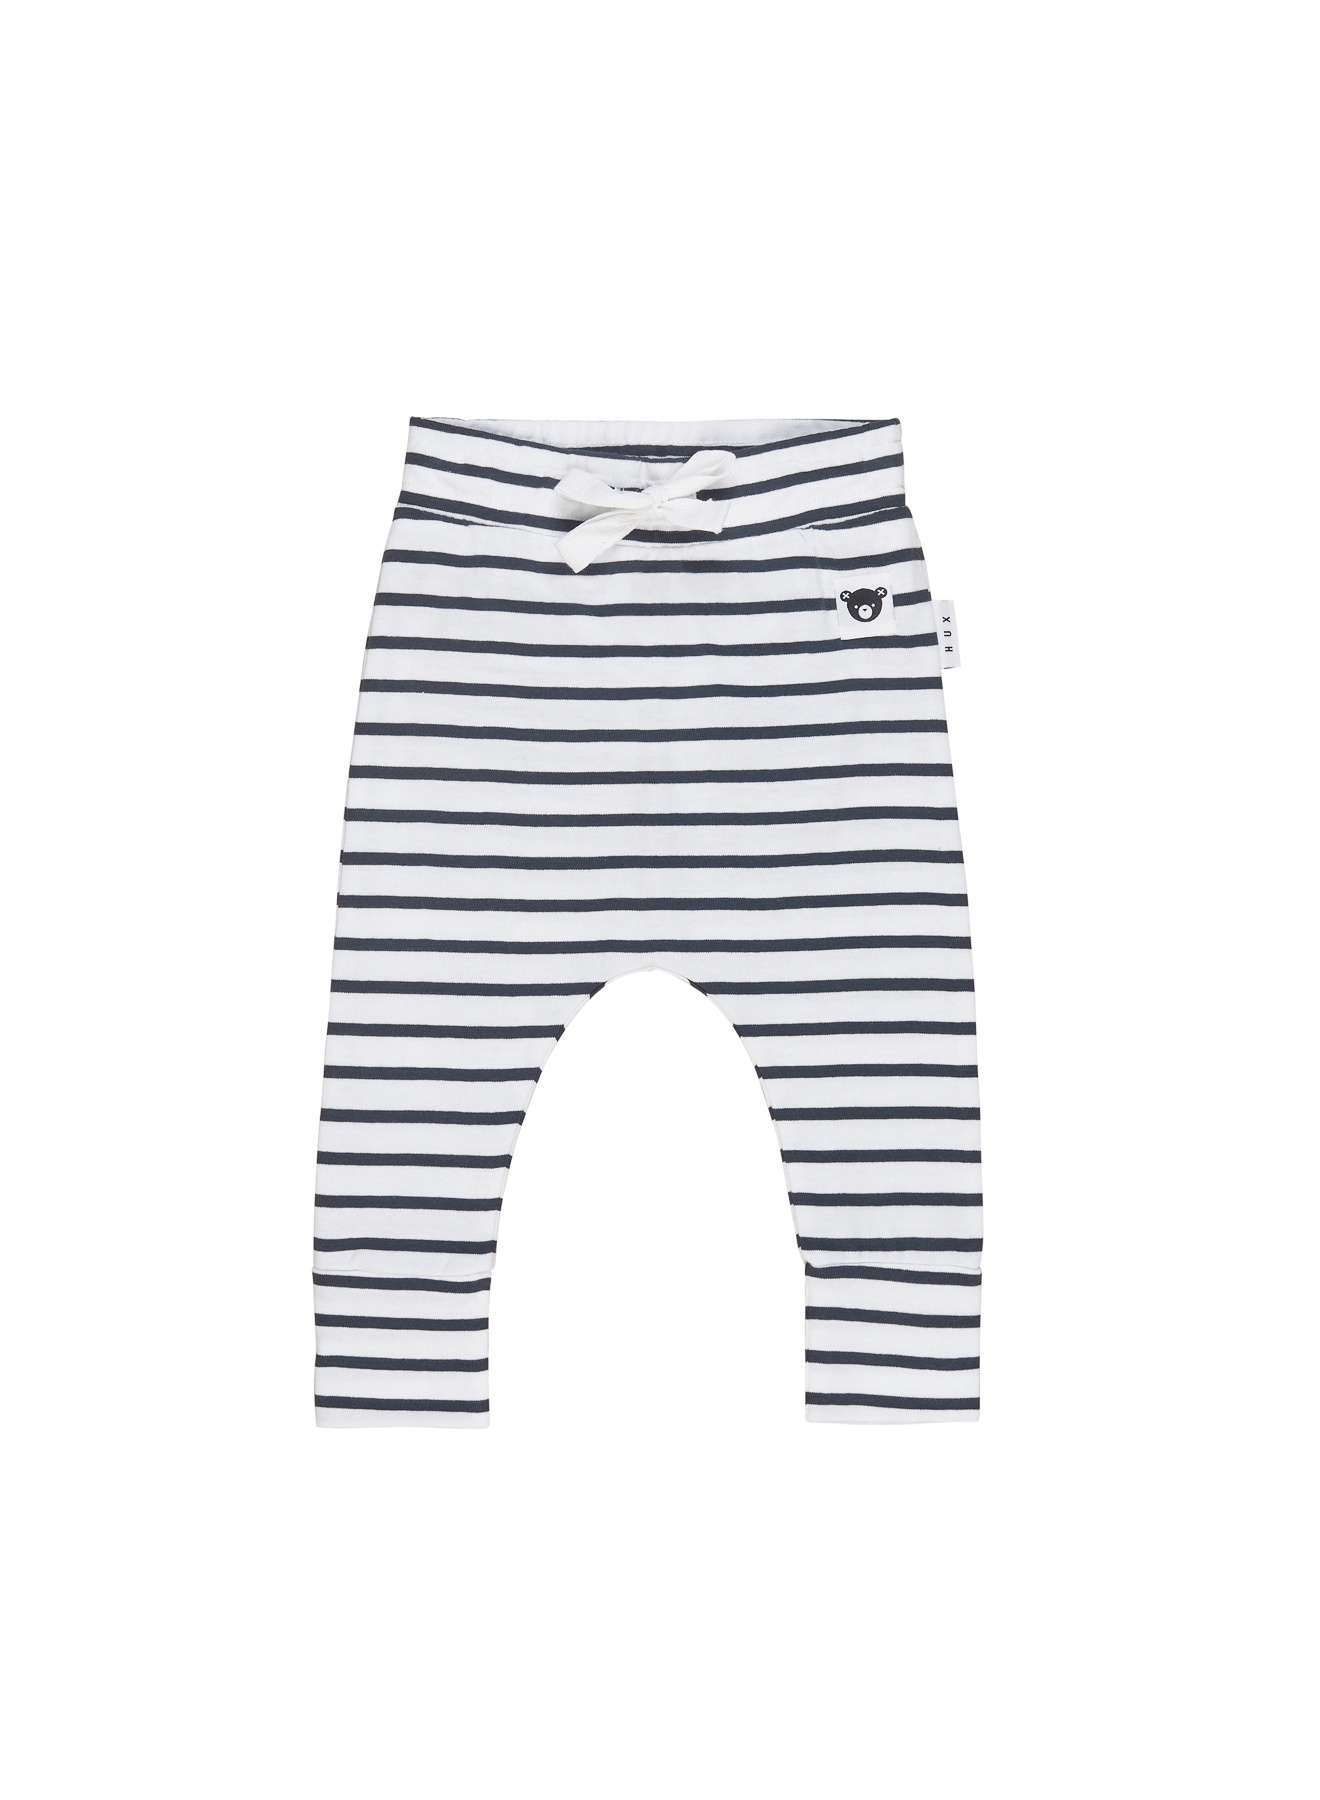 STRIPE DROP CROTCH PANT